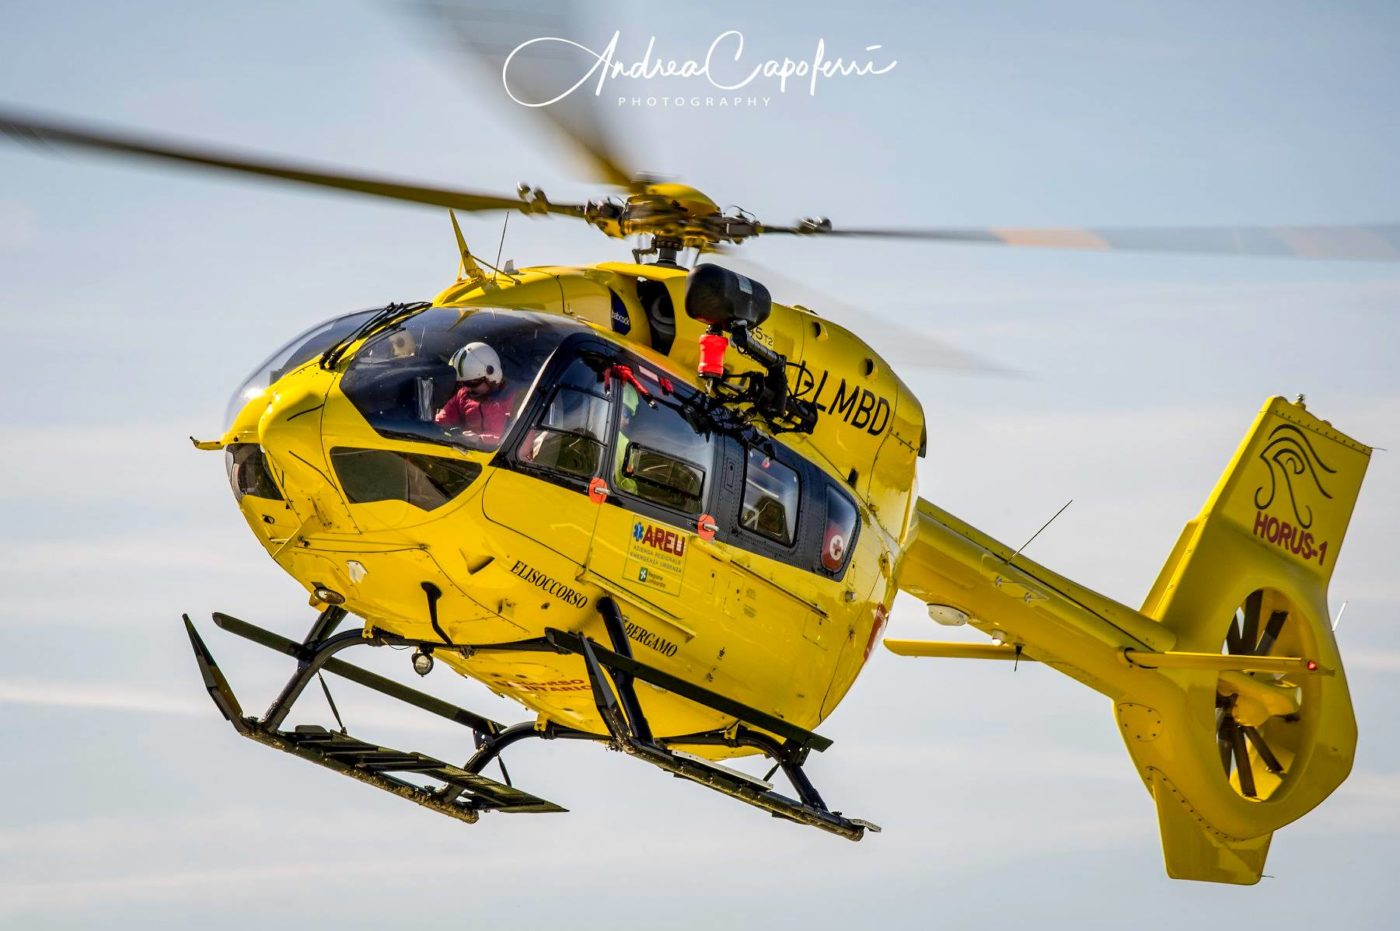 An Airbus H145 operating on a rescue mission in northern Italy. Photo submitted by Andrea Capoferri